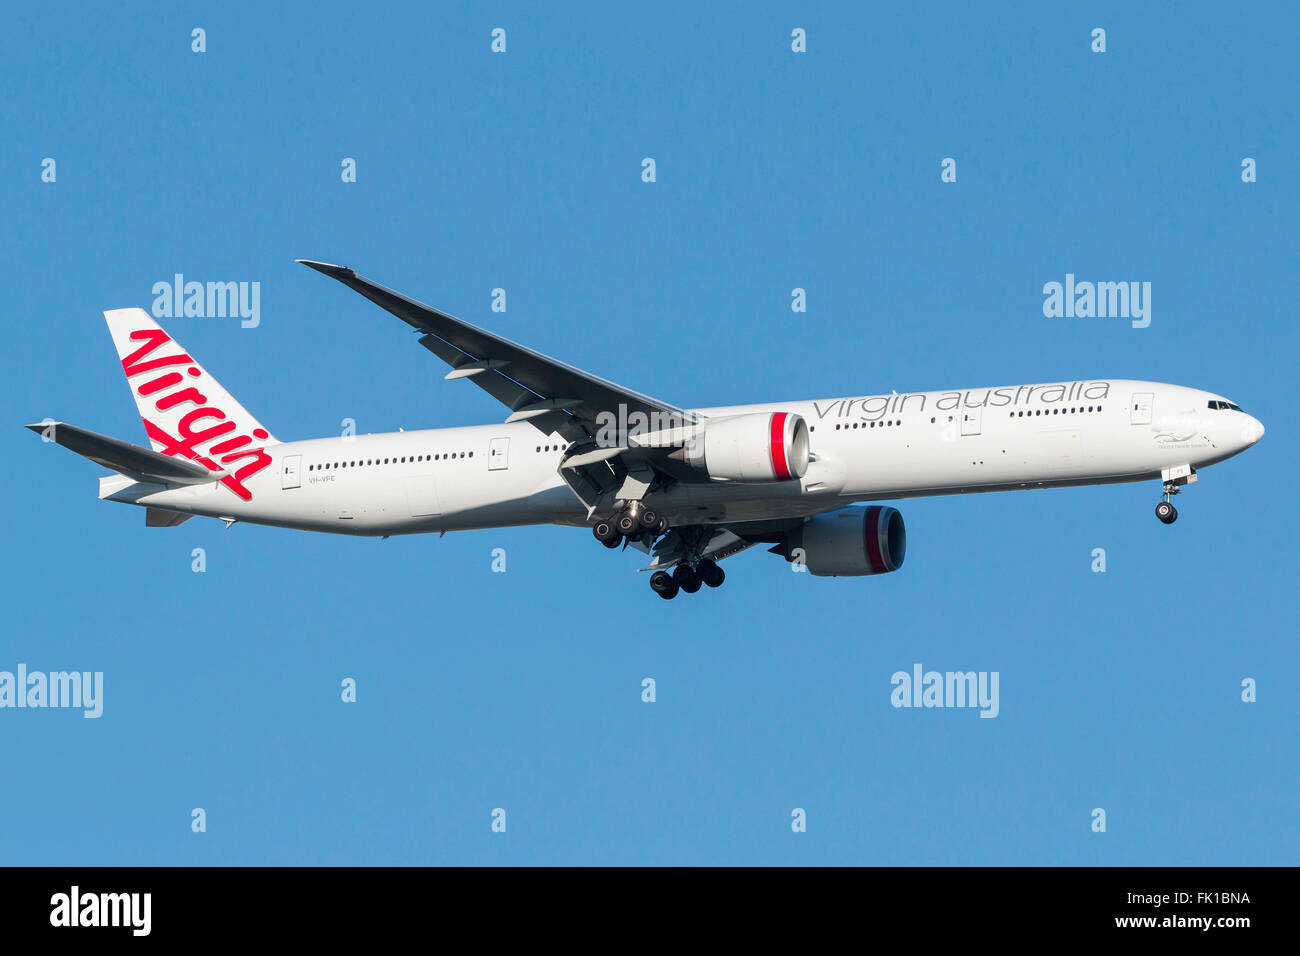 Virgin australia airlines boeing 777 3zger vh vpe stock photo virgin australia airlines boeing 777 3zger vh vpe publicscrutiny Image collections